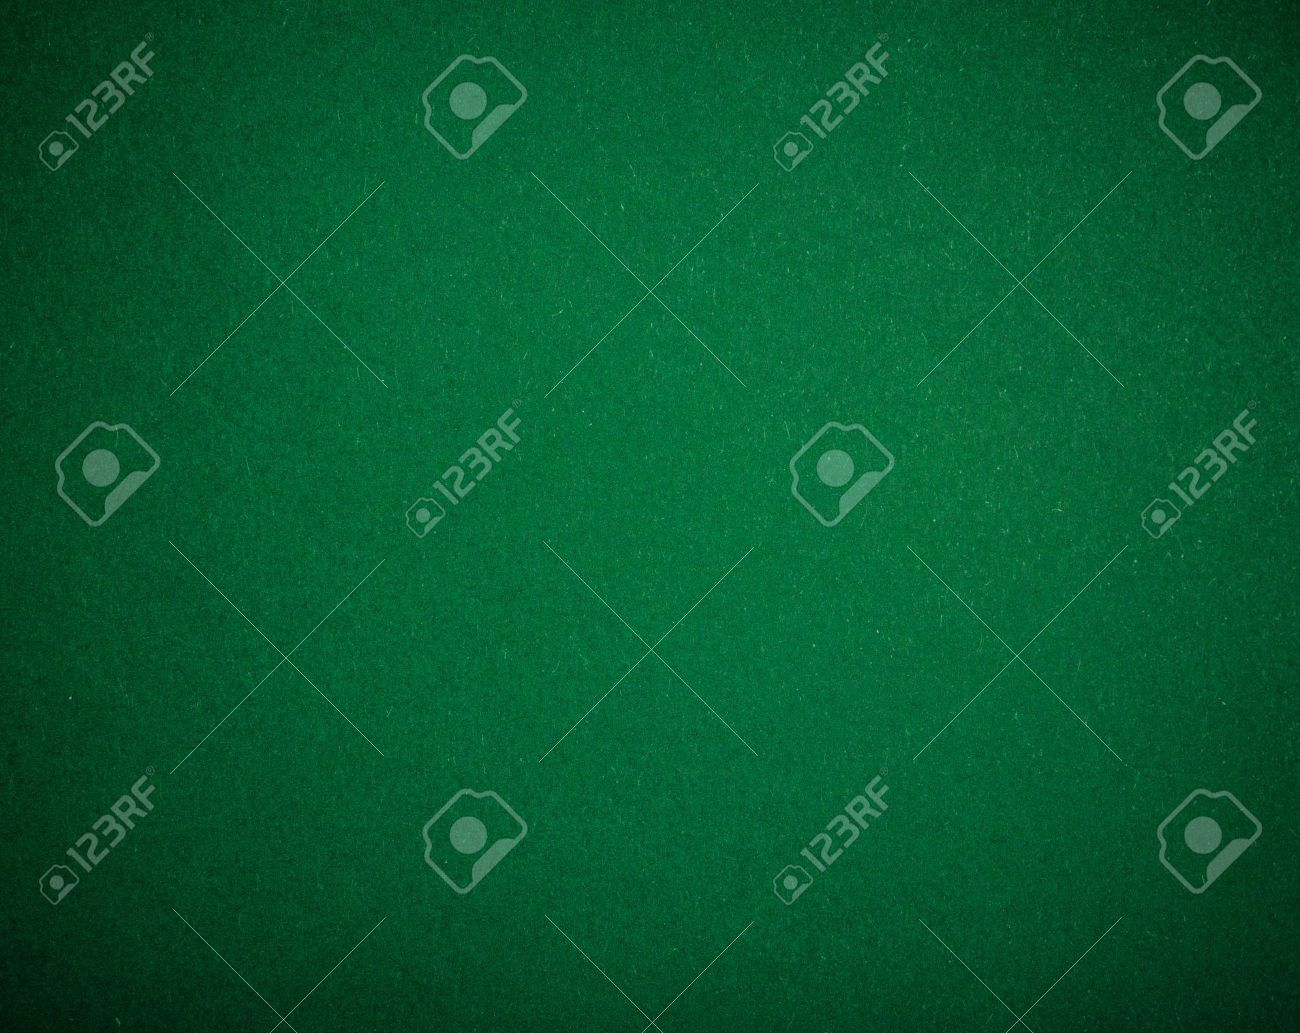 Poker table felt background in green color stock photo 18230883